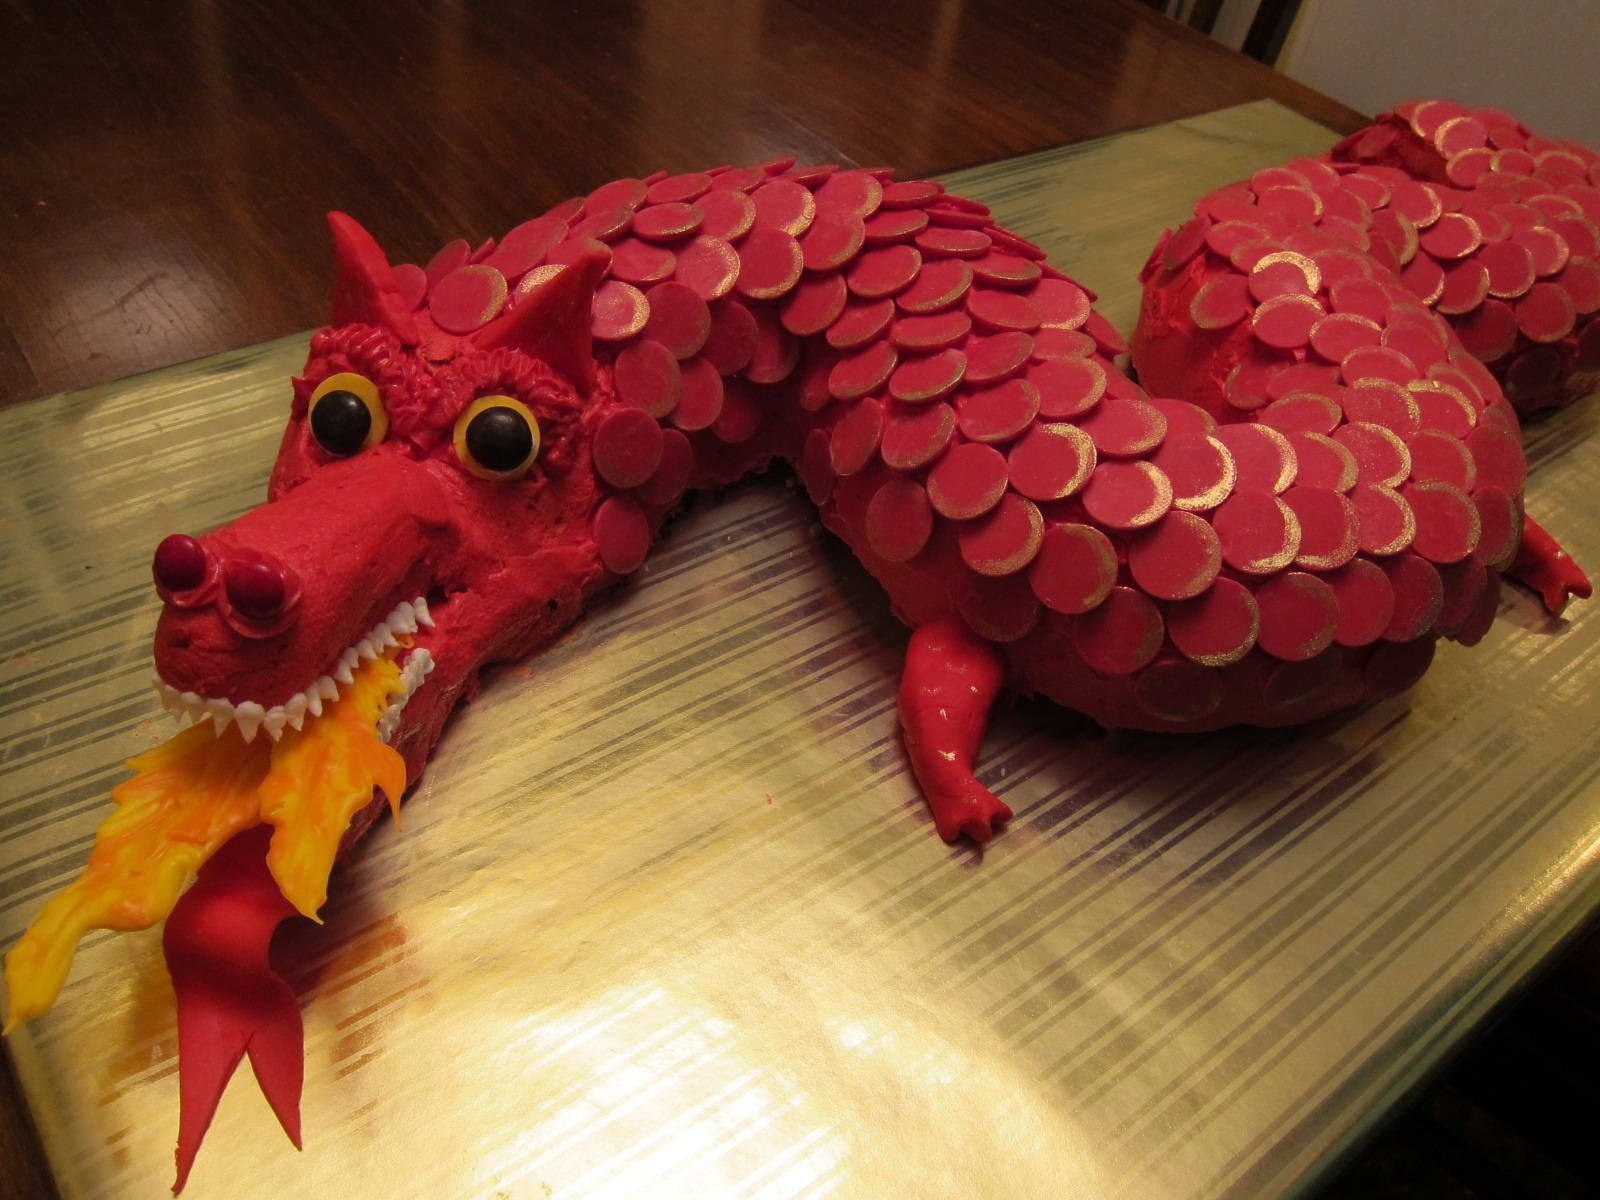 This Is An Awesome Dragon Cake For The New Year Chinese